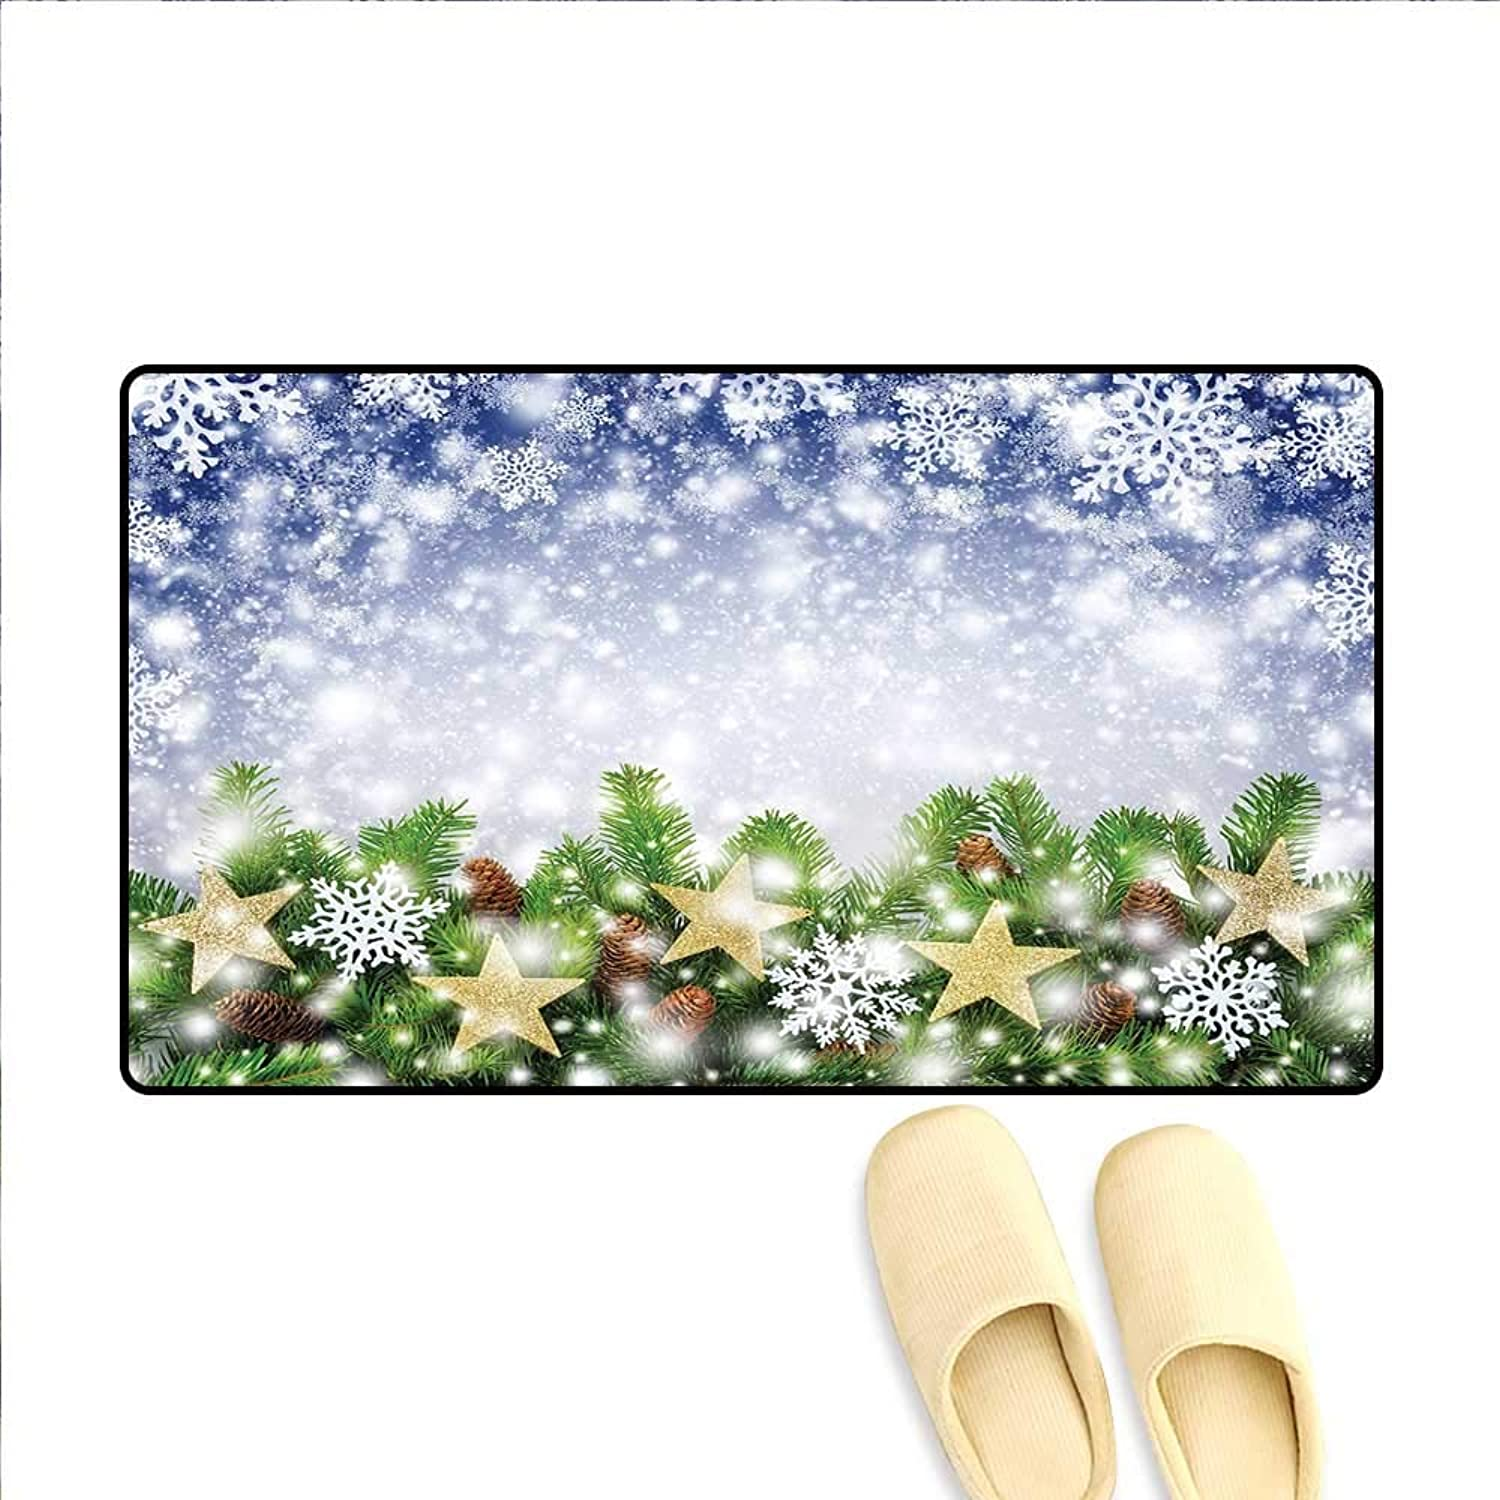 Christmas Door Mat Indoors Snow Time with Falling Flakes and Bokeh Backdrop Fir Twigs with Cones and Stars Door Mats for Inside Non Slip Backing 32 x48  Multicolor